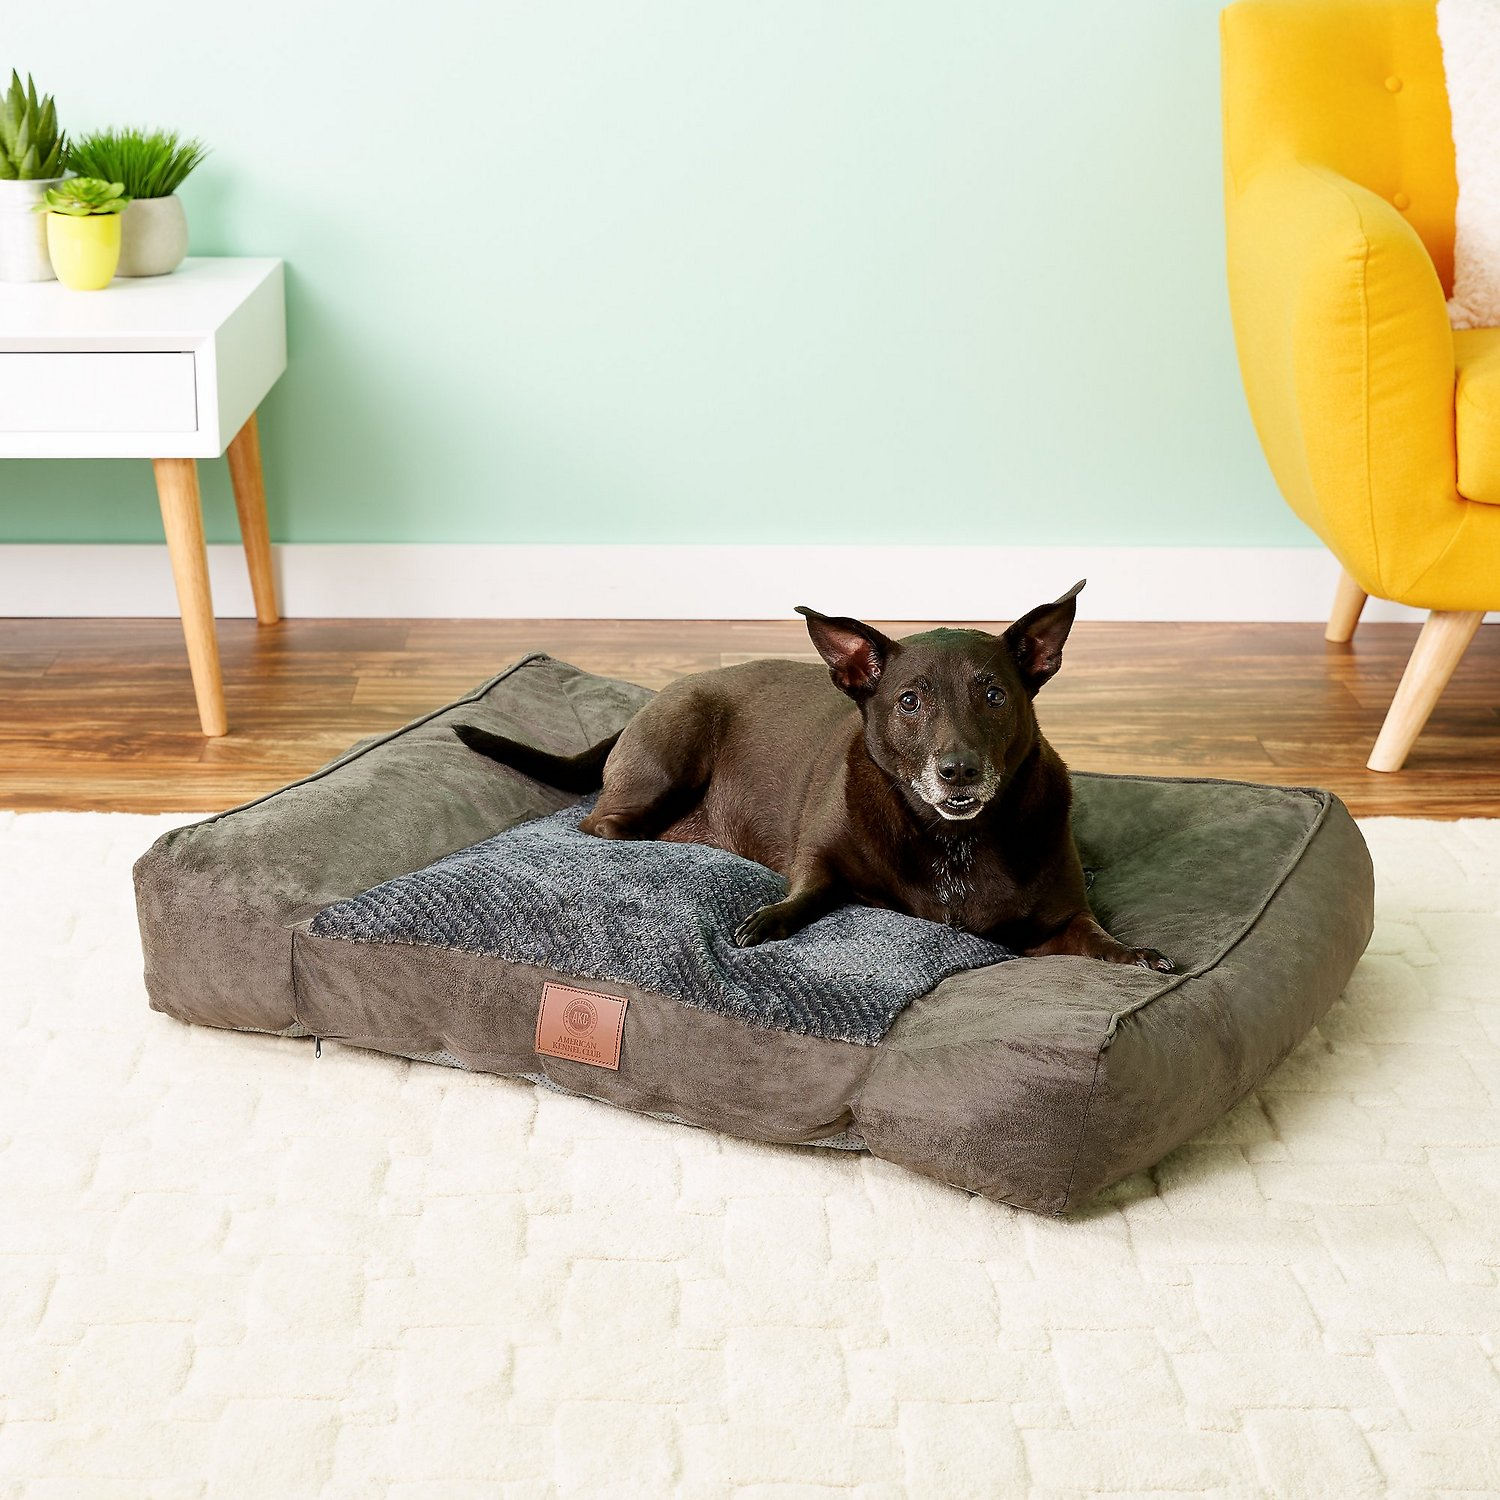 Sofa Foam Inserts Dog Beds Mats Small To Large Low Prices Free Shipping Chewy